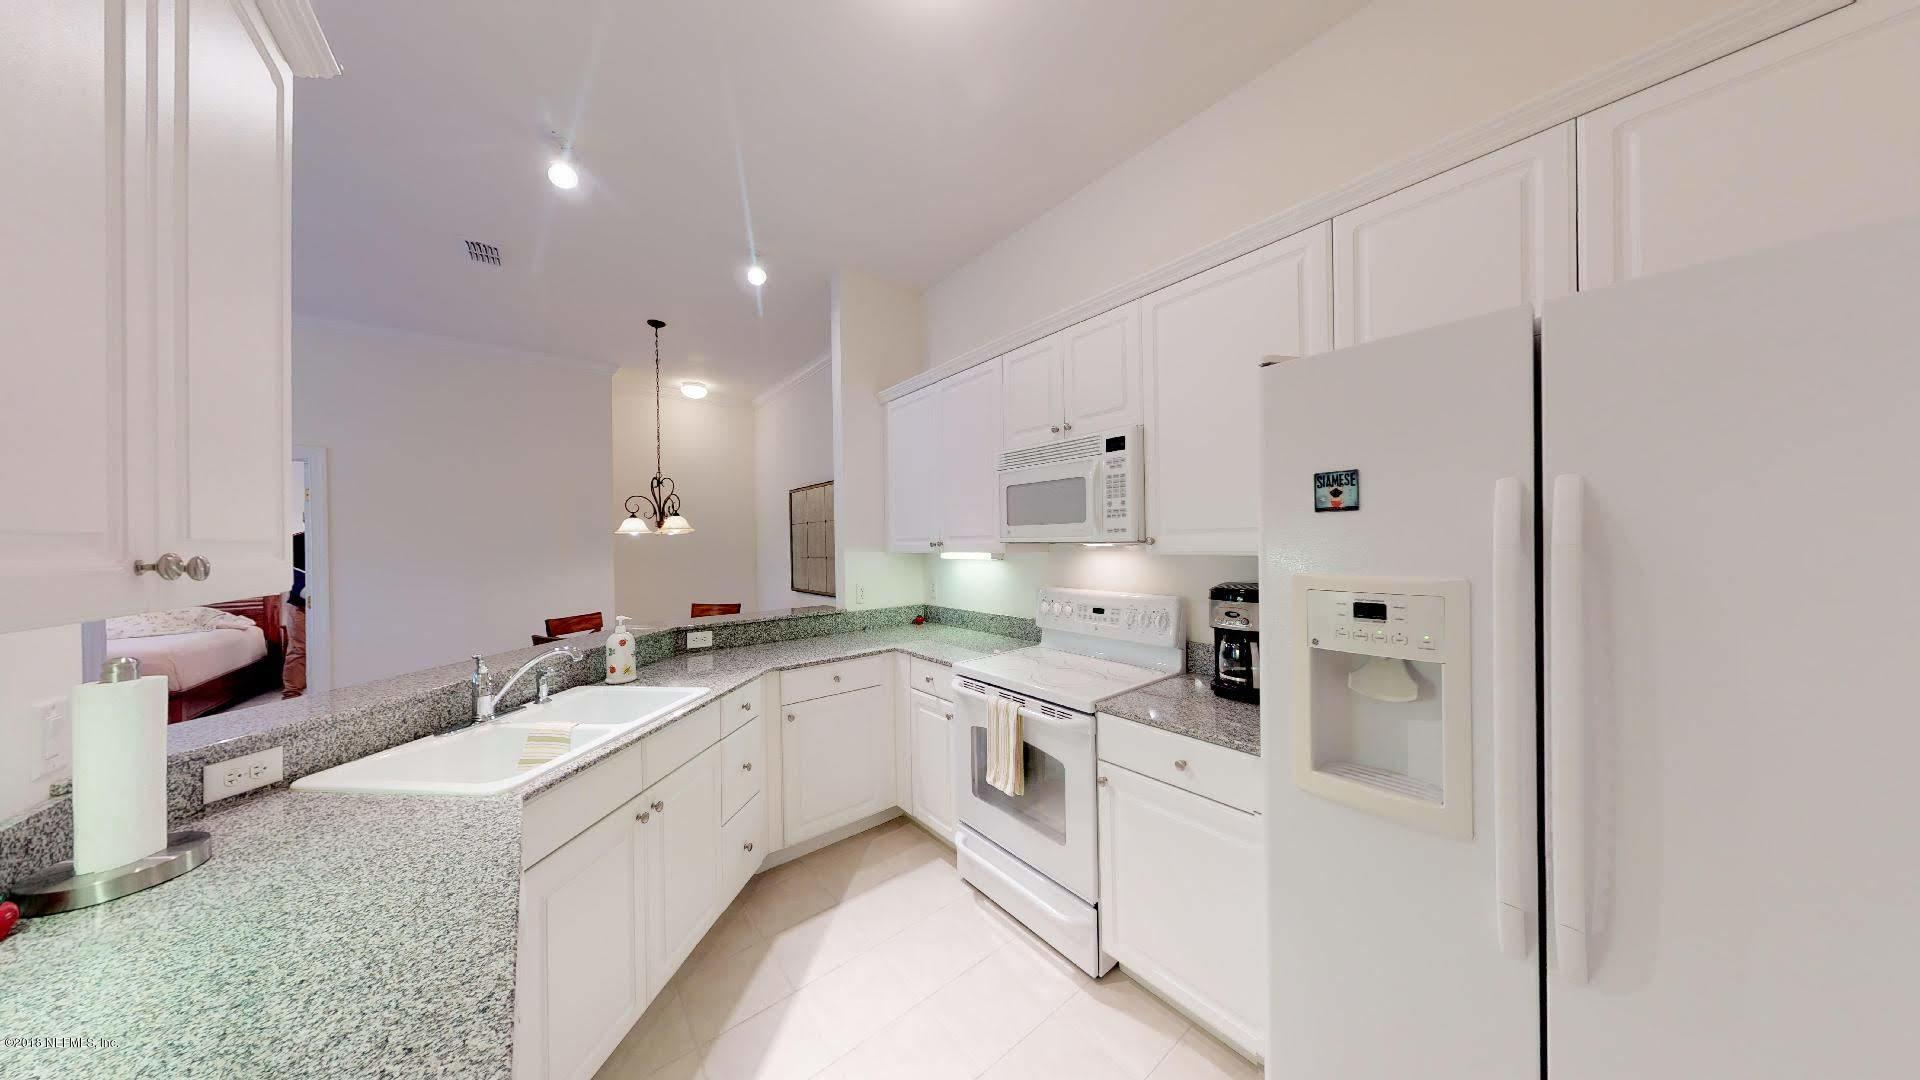 155 LEGENDARY, ST AUGUSTINE, FLORIDA 32092, 2 Bedrooms Bedrooms, ,2 BathroomsBathrooms,Residential - condos/townhomes,For sale,LEGENDARY,964978